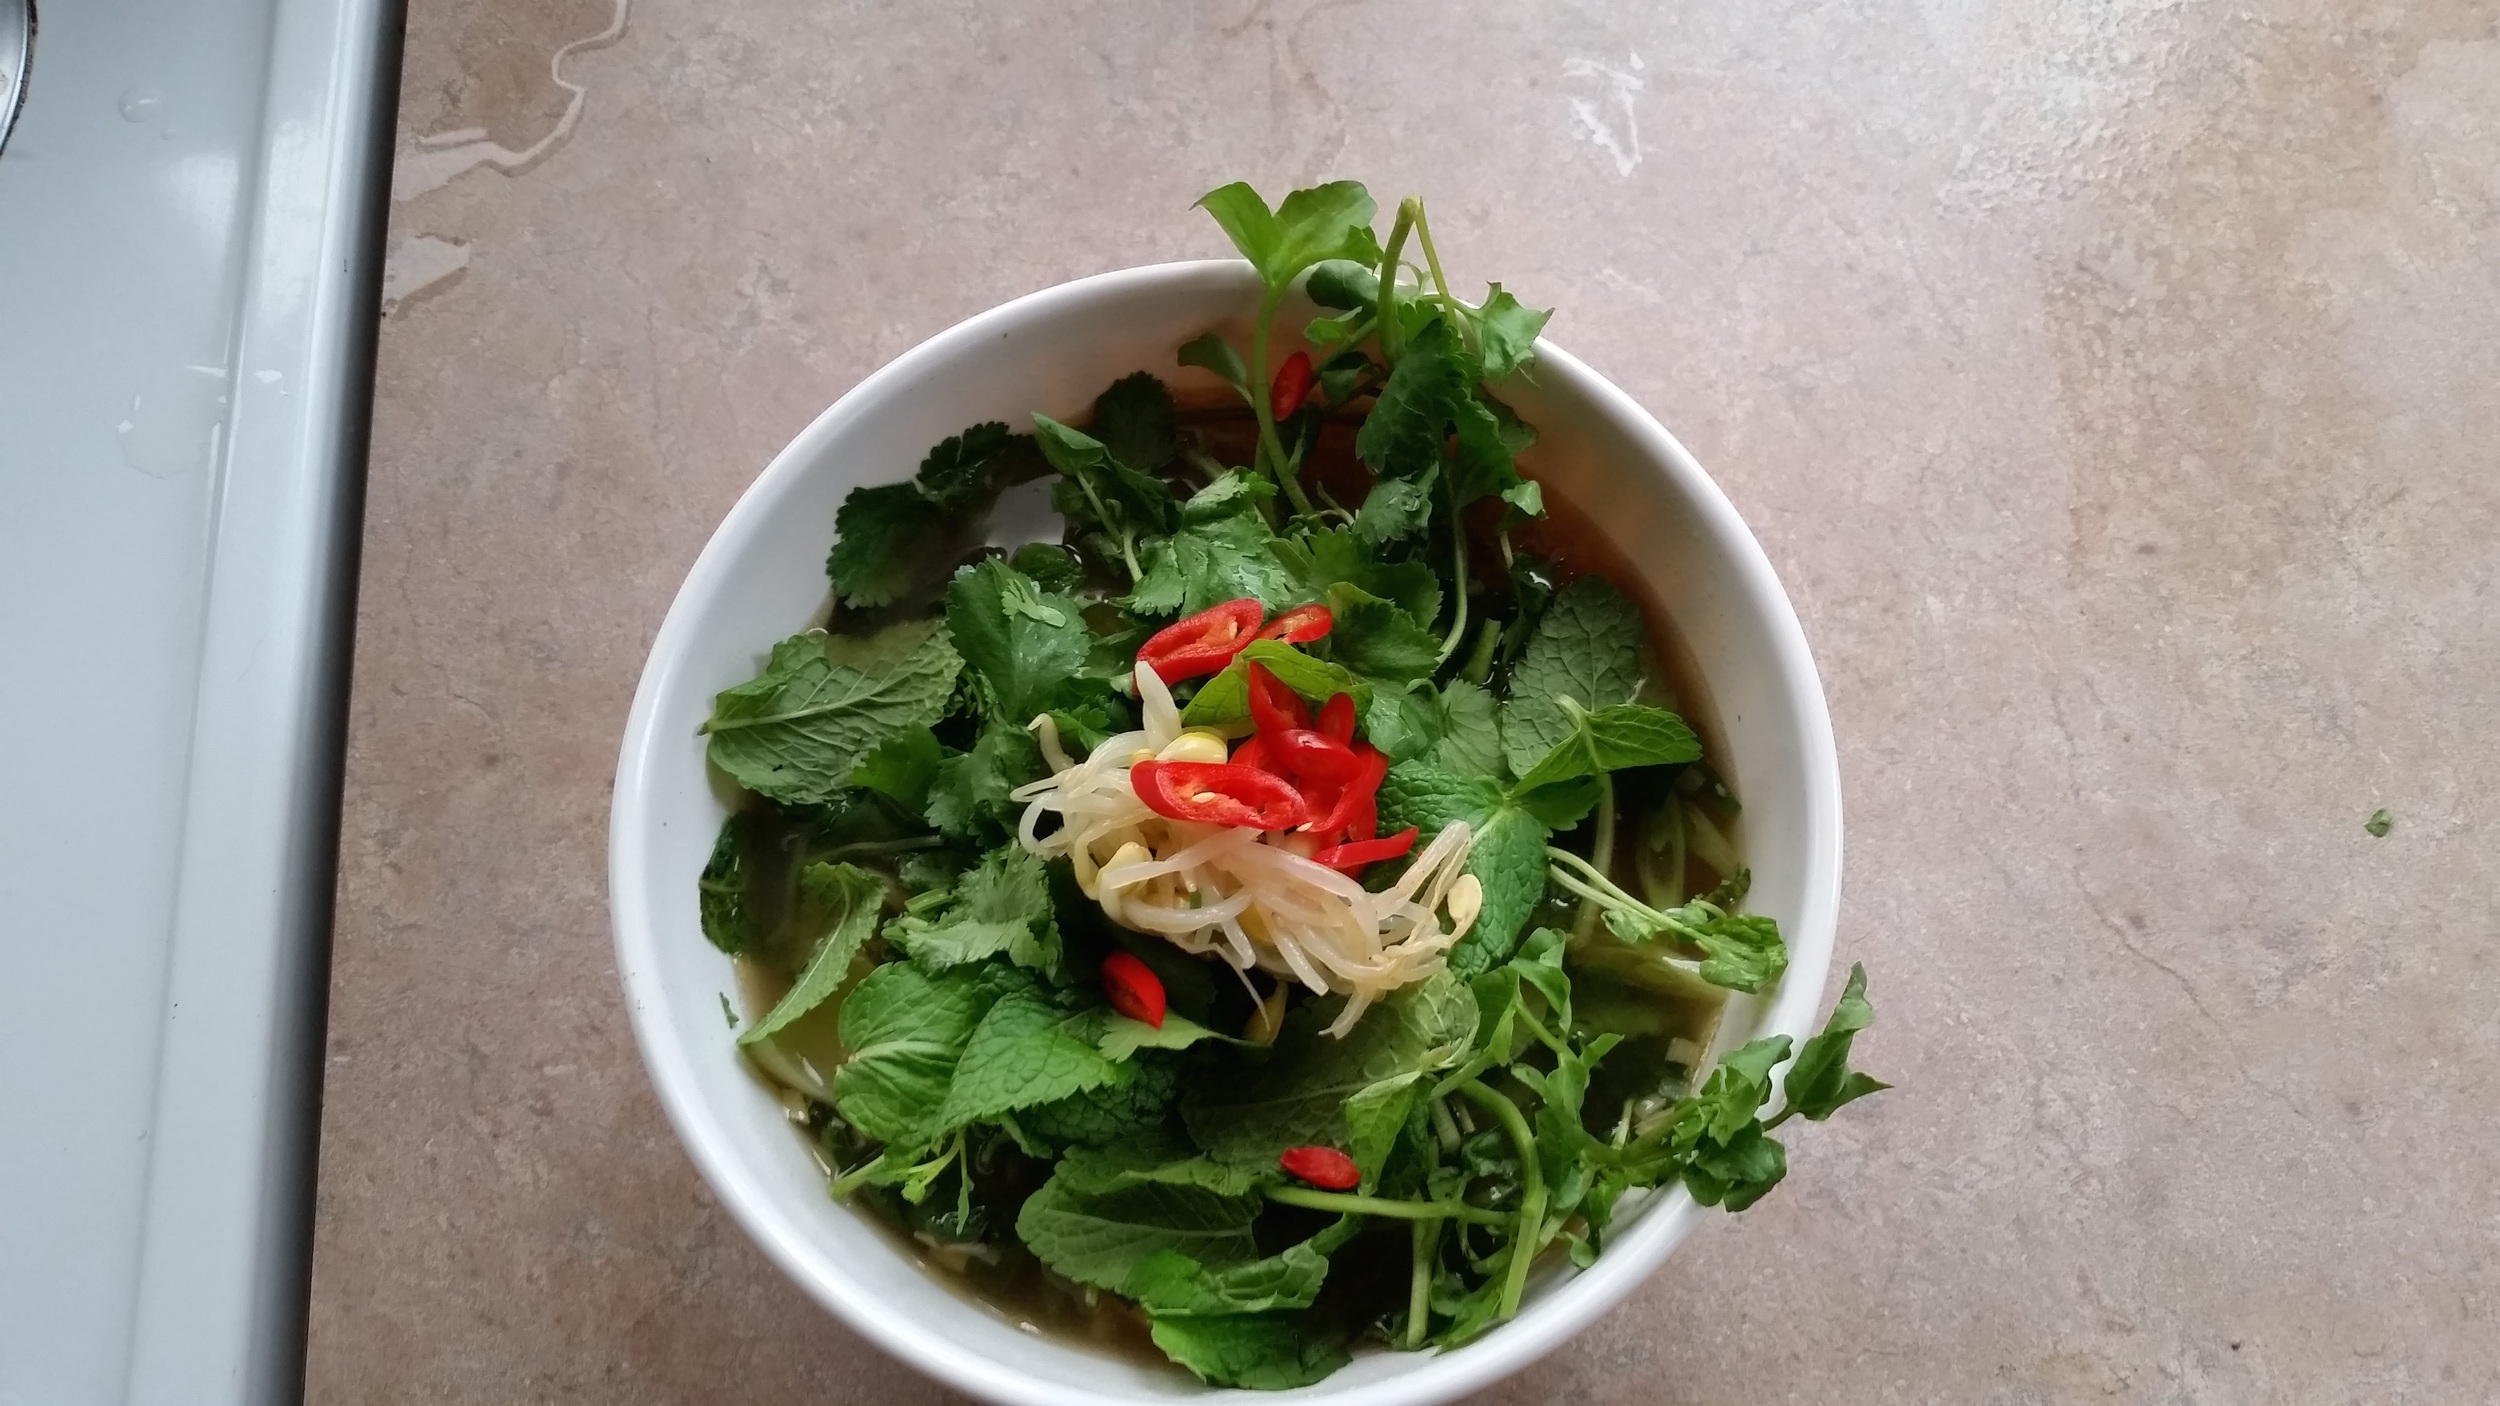 Serve with: chilis, fresh herbs, bean sprouts etc!  Enjoy!